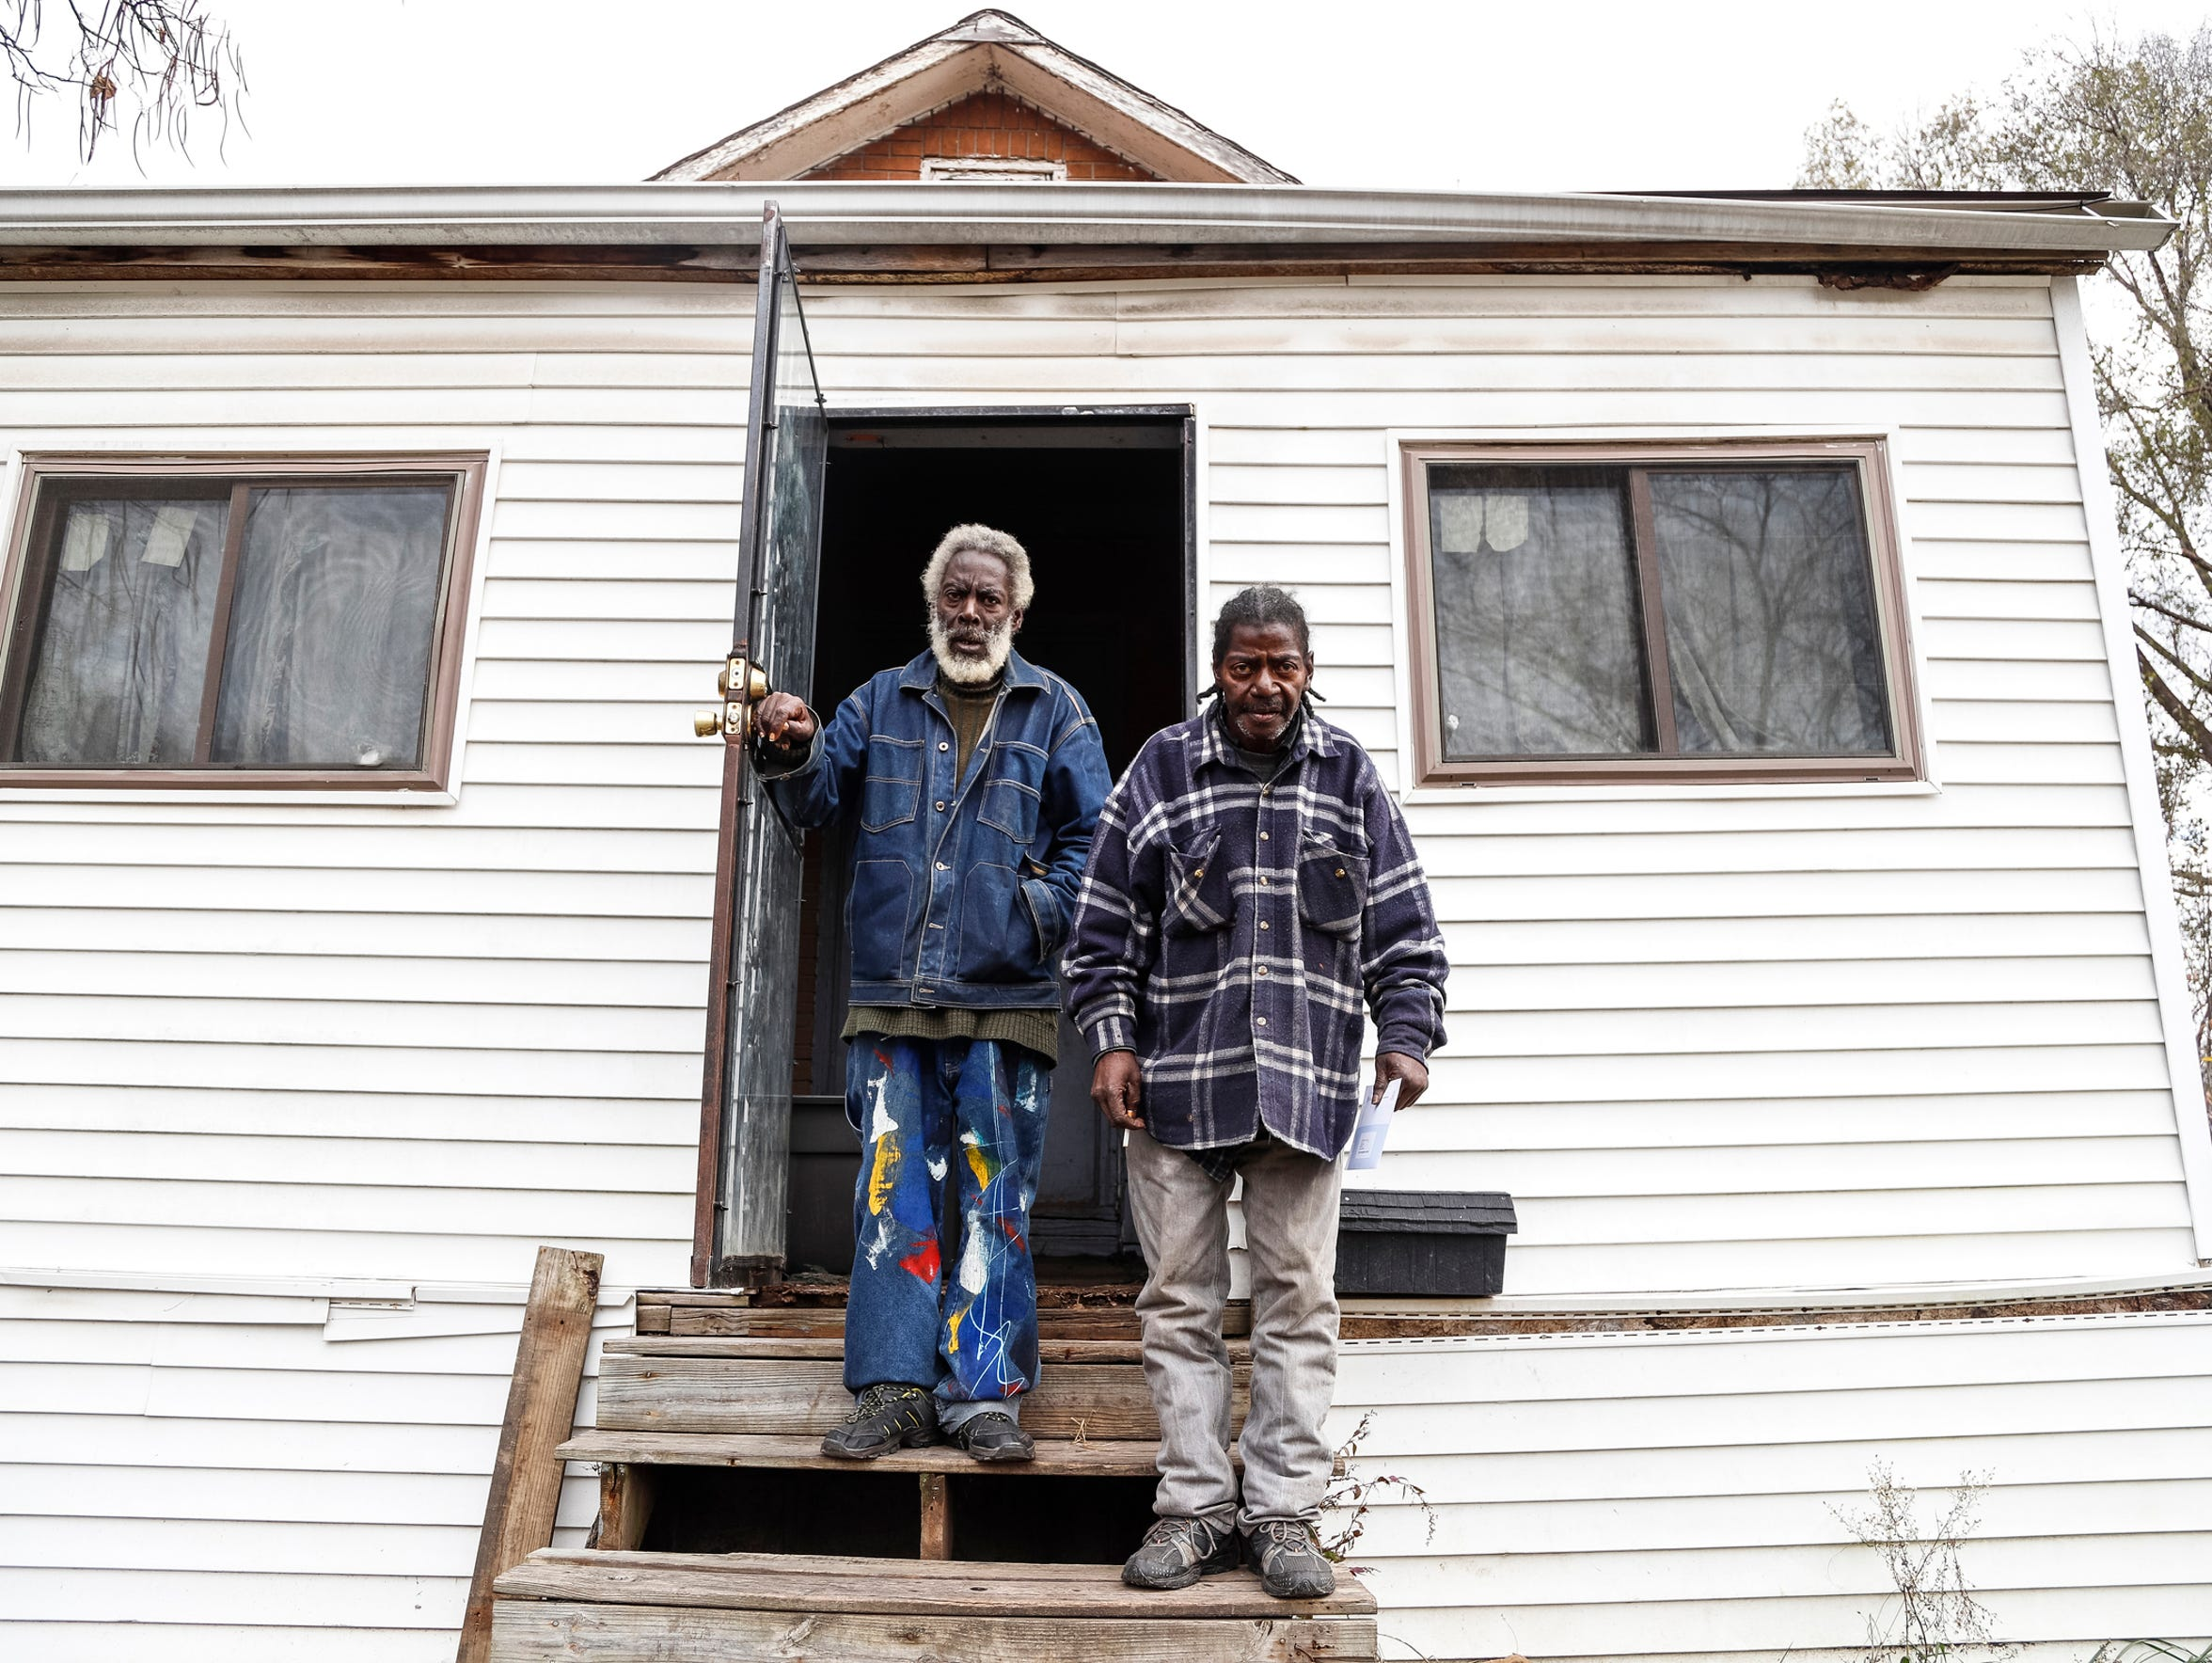 Twins Wardell and Ordell Belt pose in November outside their home on Alpine Street in Detroit. (Photo taken Nov. 22, 2017)